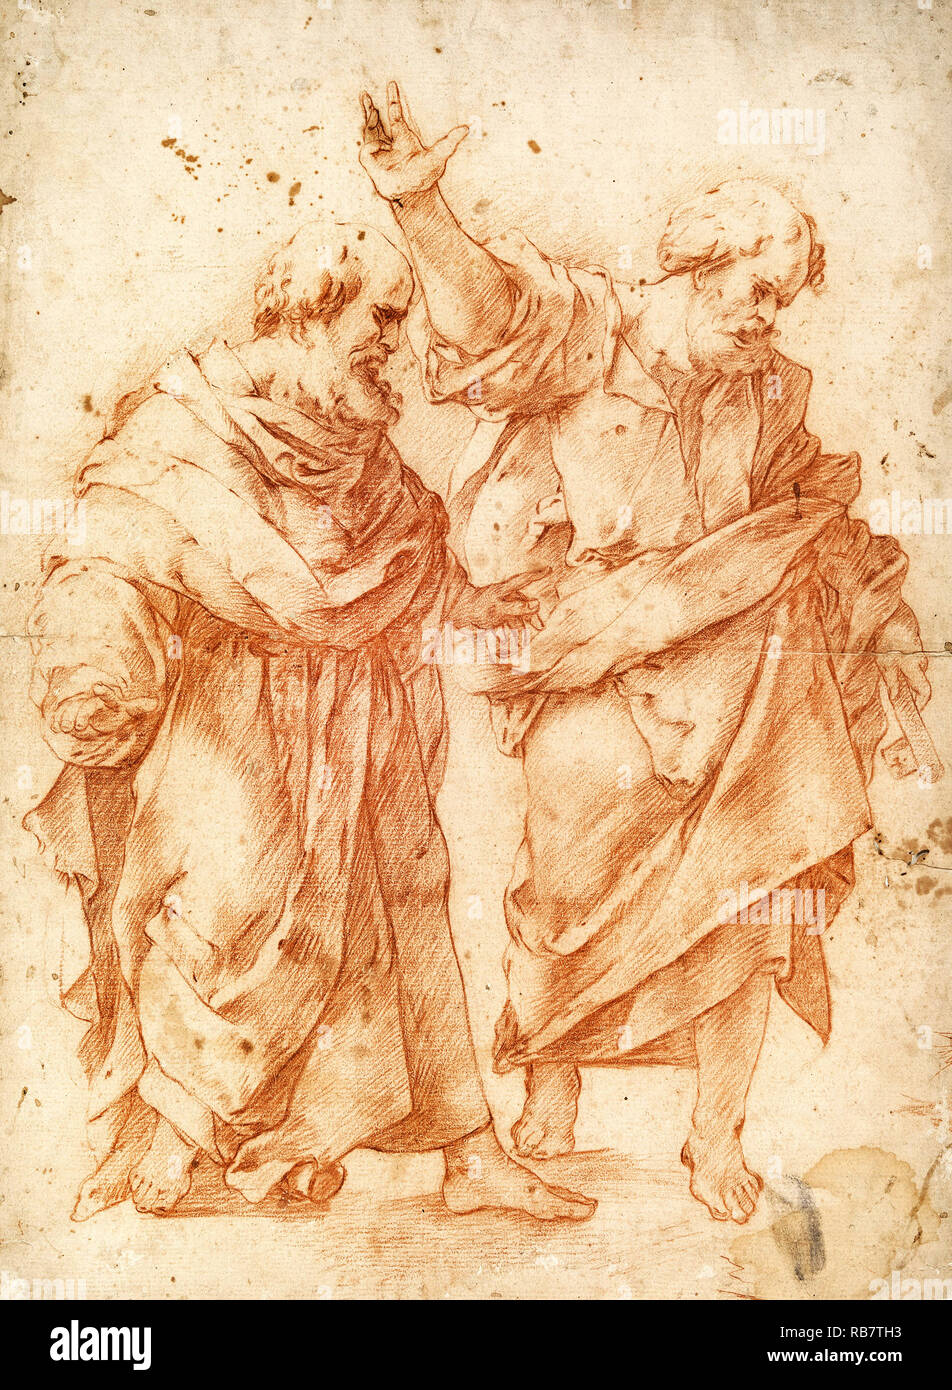 Luca Giordano, Two Apostles, Circa 1650 Red chalk on cream paper, drawing, Cooper Hewitt, Smithsonian Design Museum, USA. - Stock Image